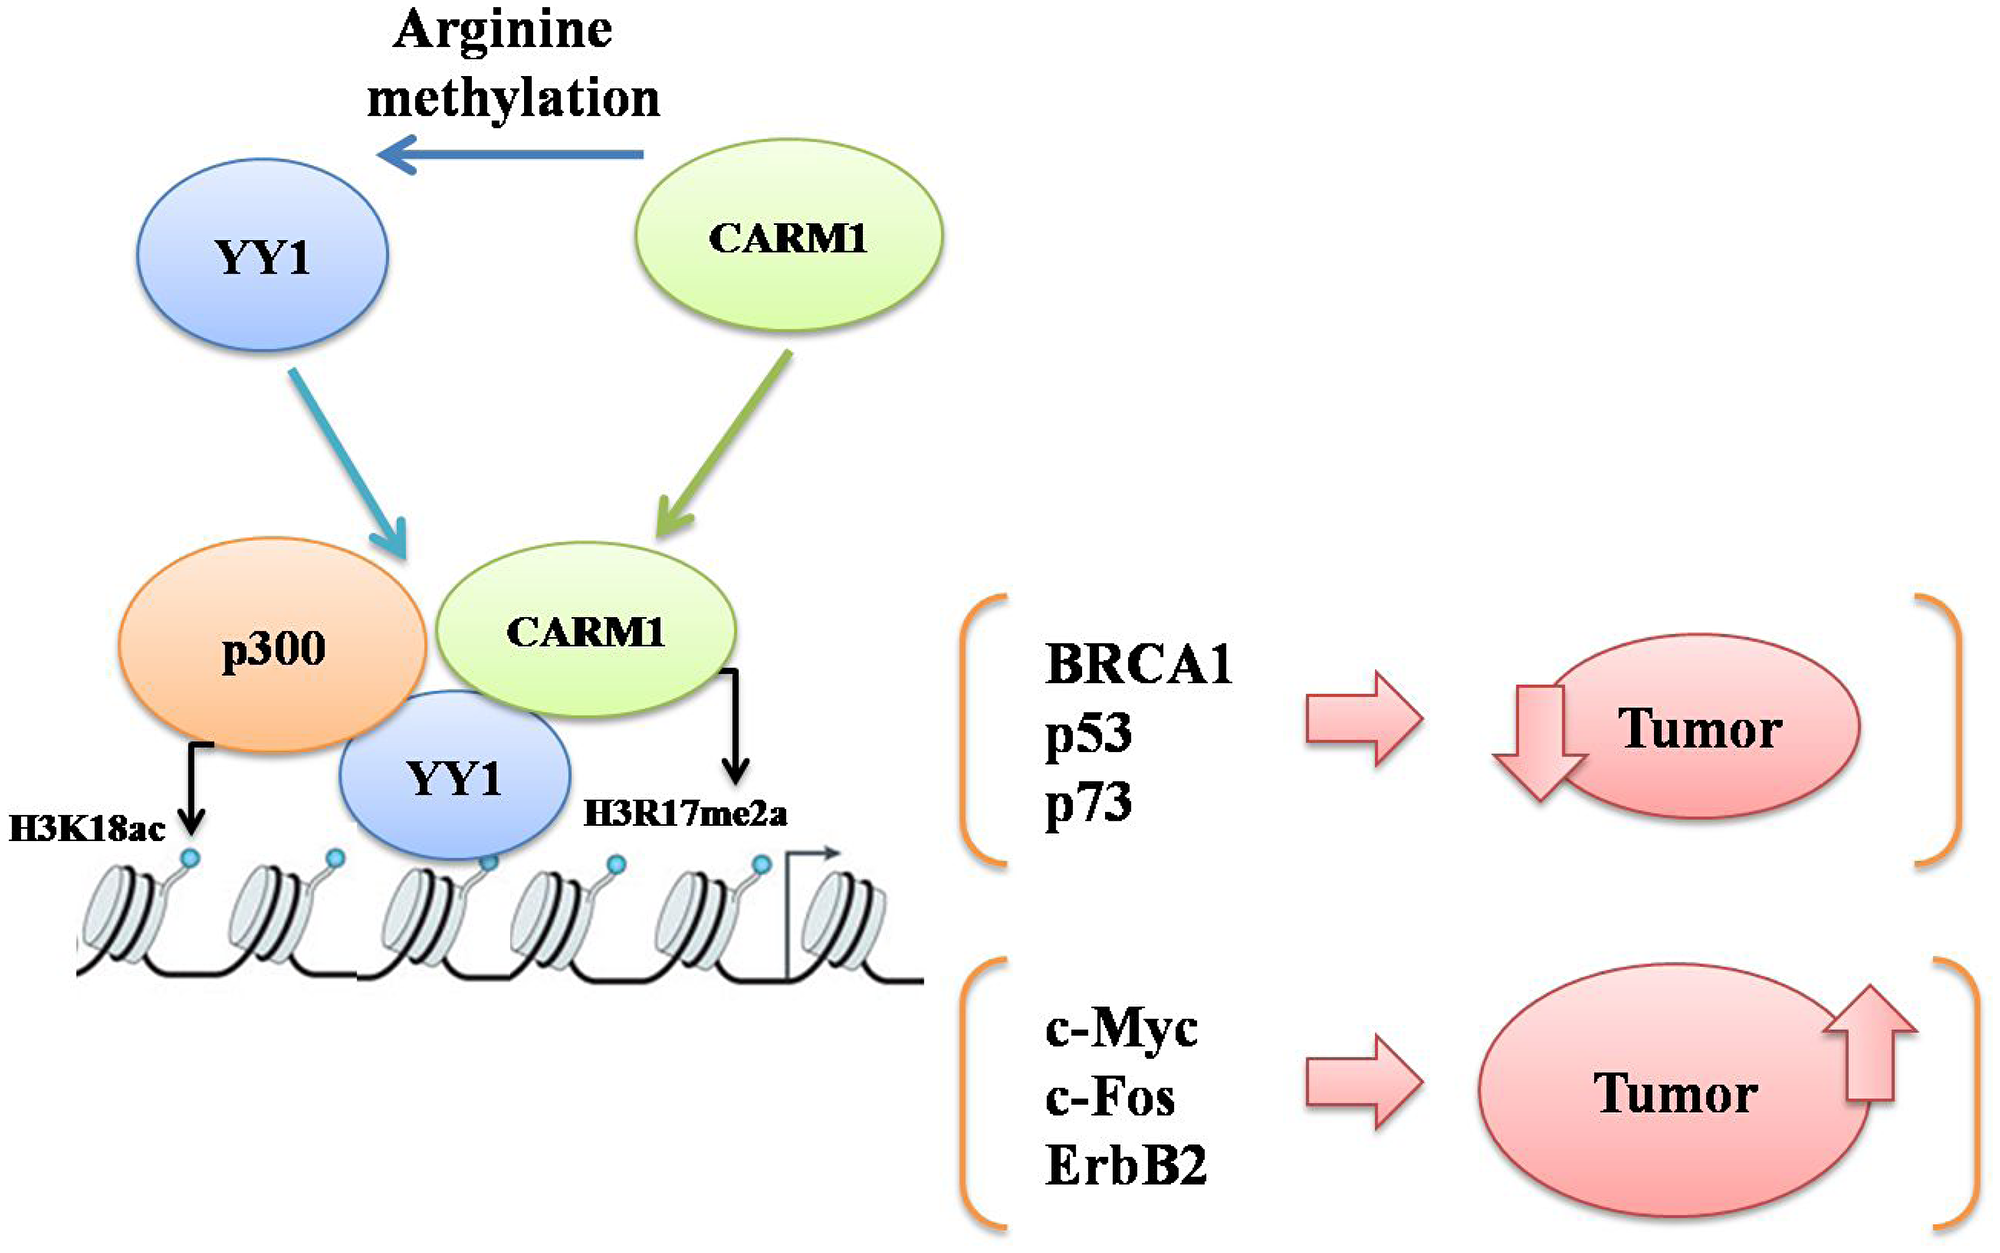 A schematic to explain probable mechanisms of cooperative action between YY1 and CARM1 either to suppress or promote carcinogenesis by upregulating either YY1 responsive tumor suppressor genes (such as BRCA1, p53 and p73) or YY1 responsive oncogenes (such as c-Myc, c-Fos and Erb B2) respectively in a context dependent manner.